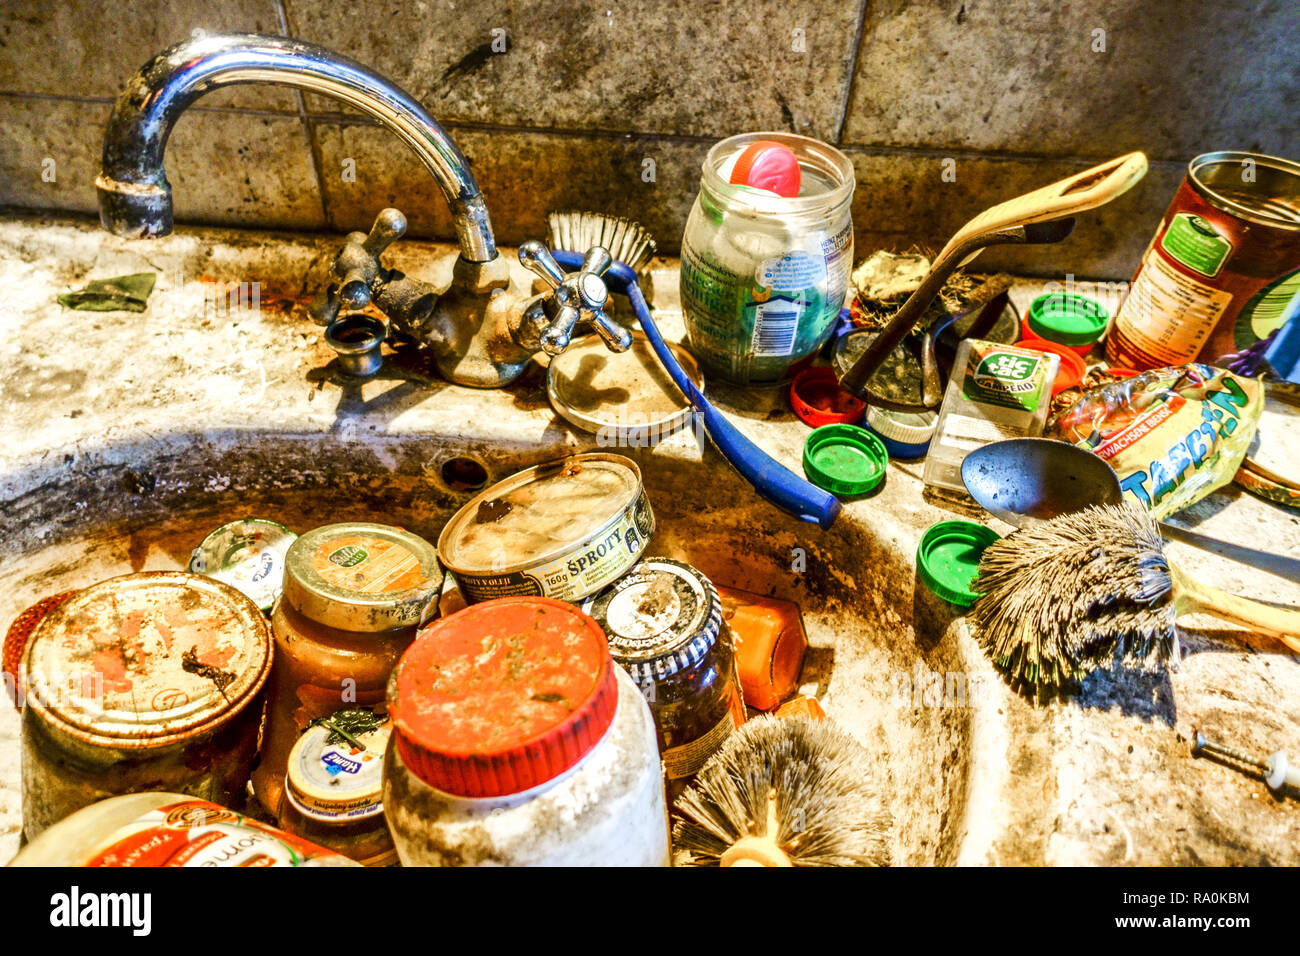 Dirty and unwashed kitchen stuff in the sink - Stock Image